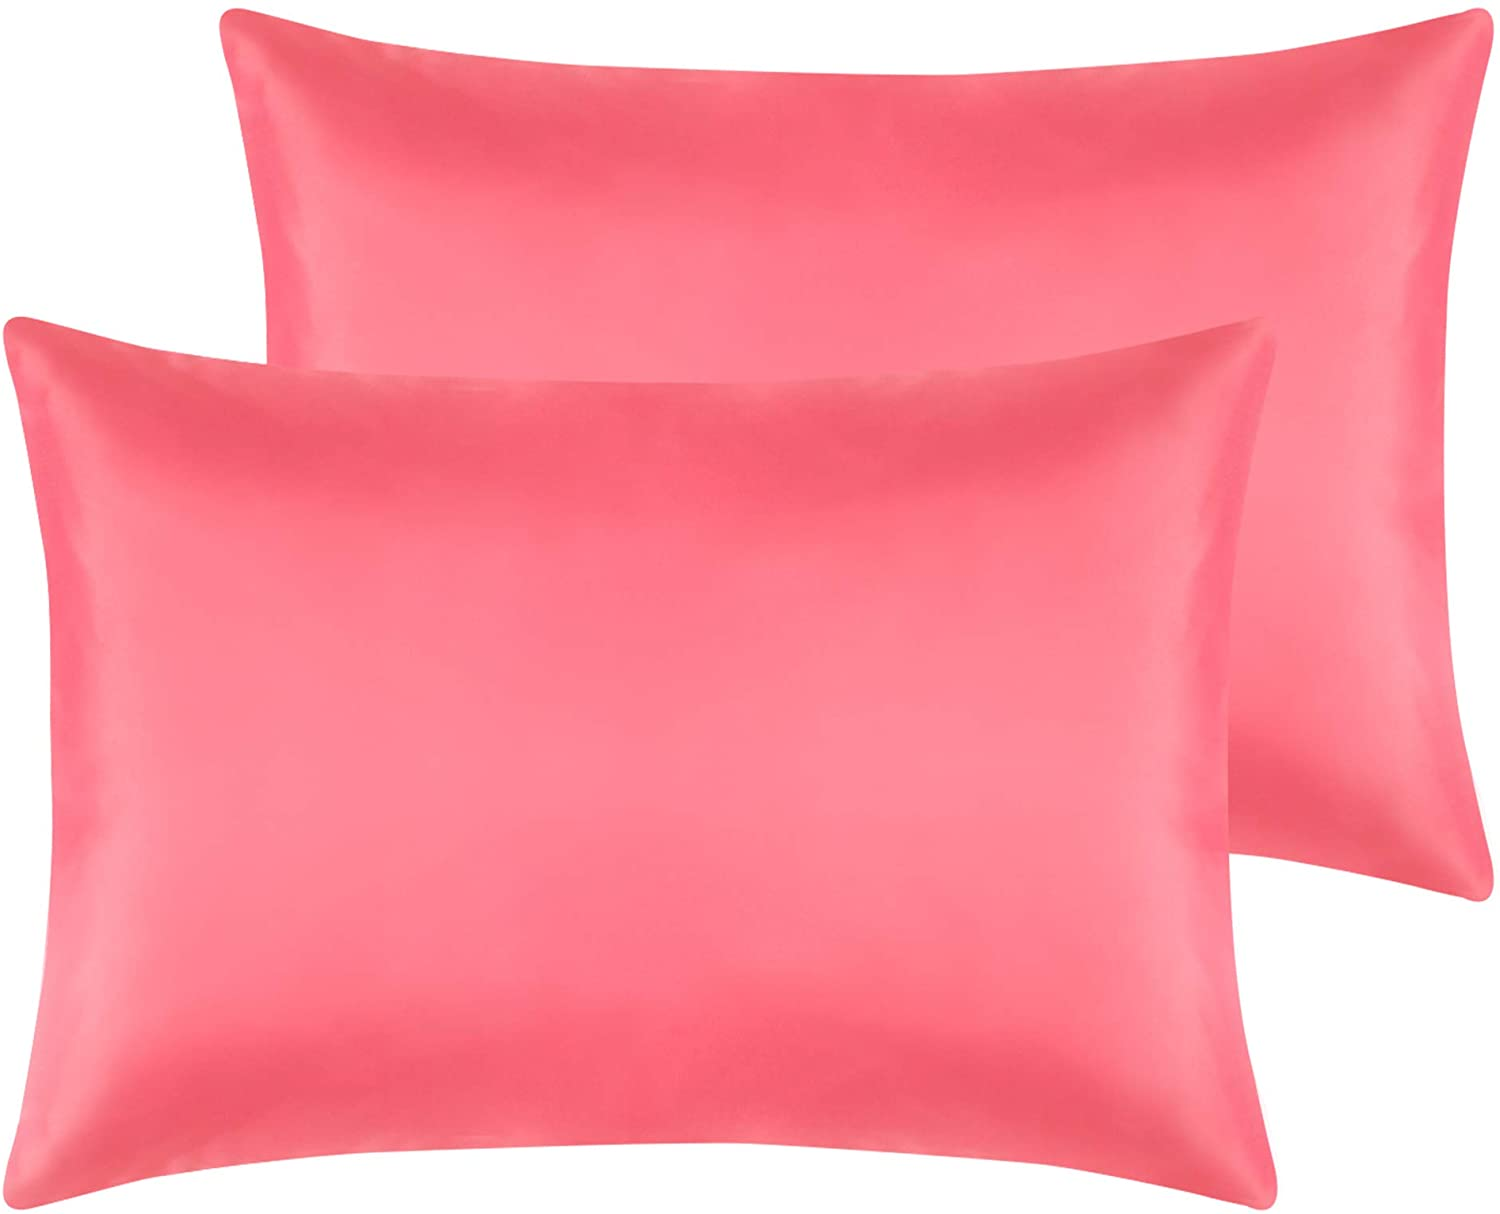 NTBAY Zippered Satin Toddler Pillowcases, 2 Pack Super Soft and Luxury Travel Pillow Cases, 13 x 18 Inches, Coral Pink